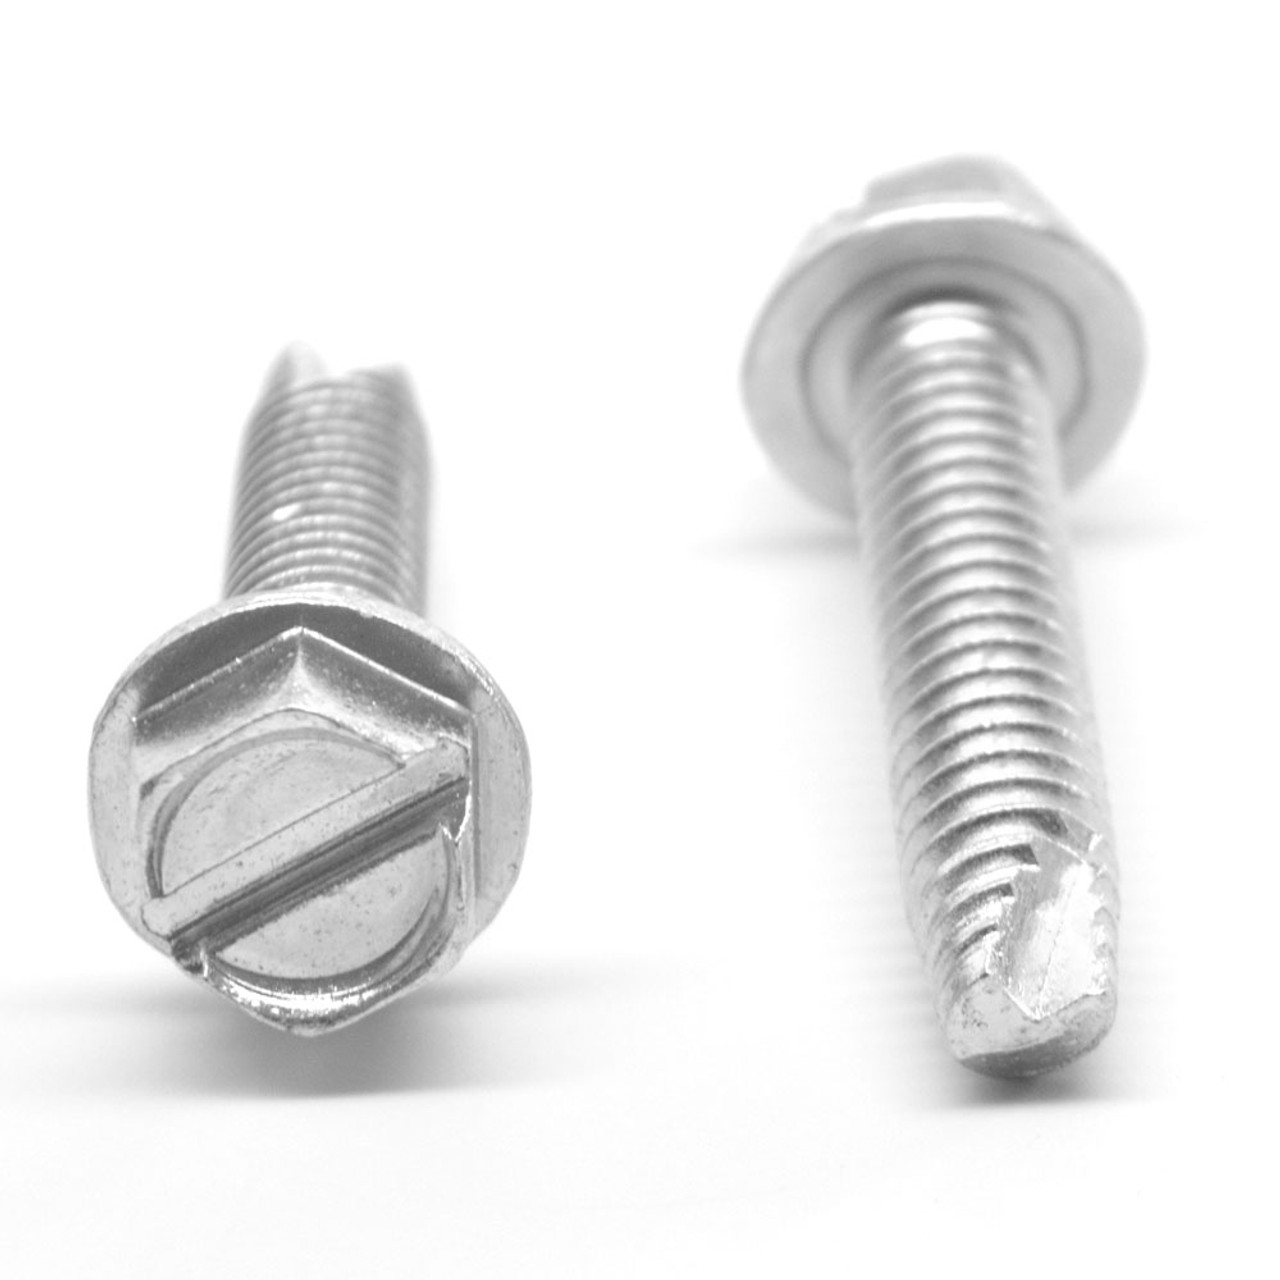 #10-32 x 1/2 Fine Thread Thread Cutting Screw Slotted Hex Washer Head Type 23 Low Carbon Steel Zinc Plated